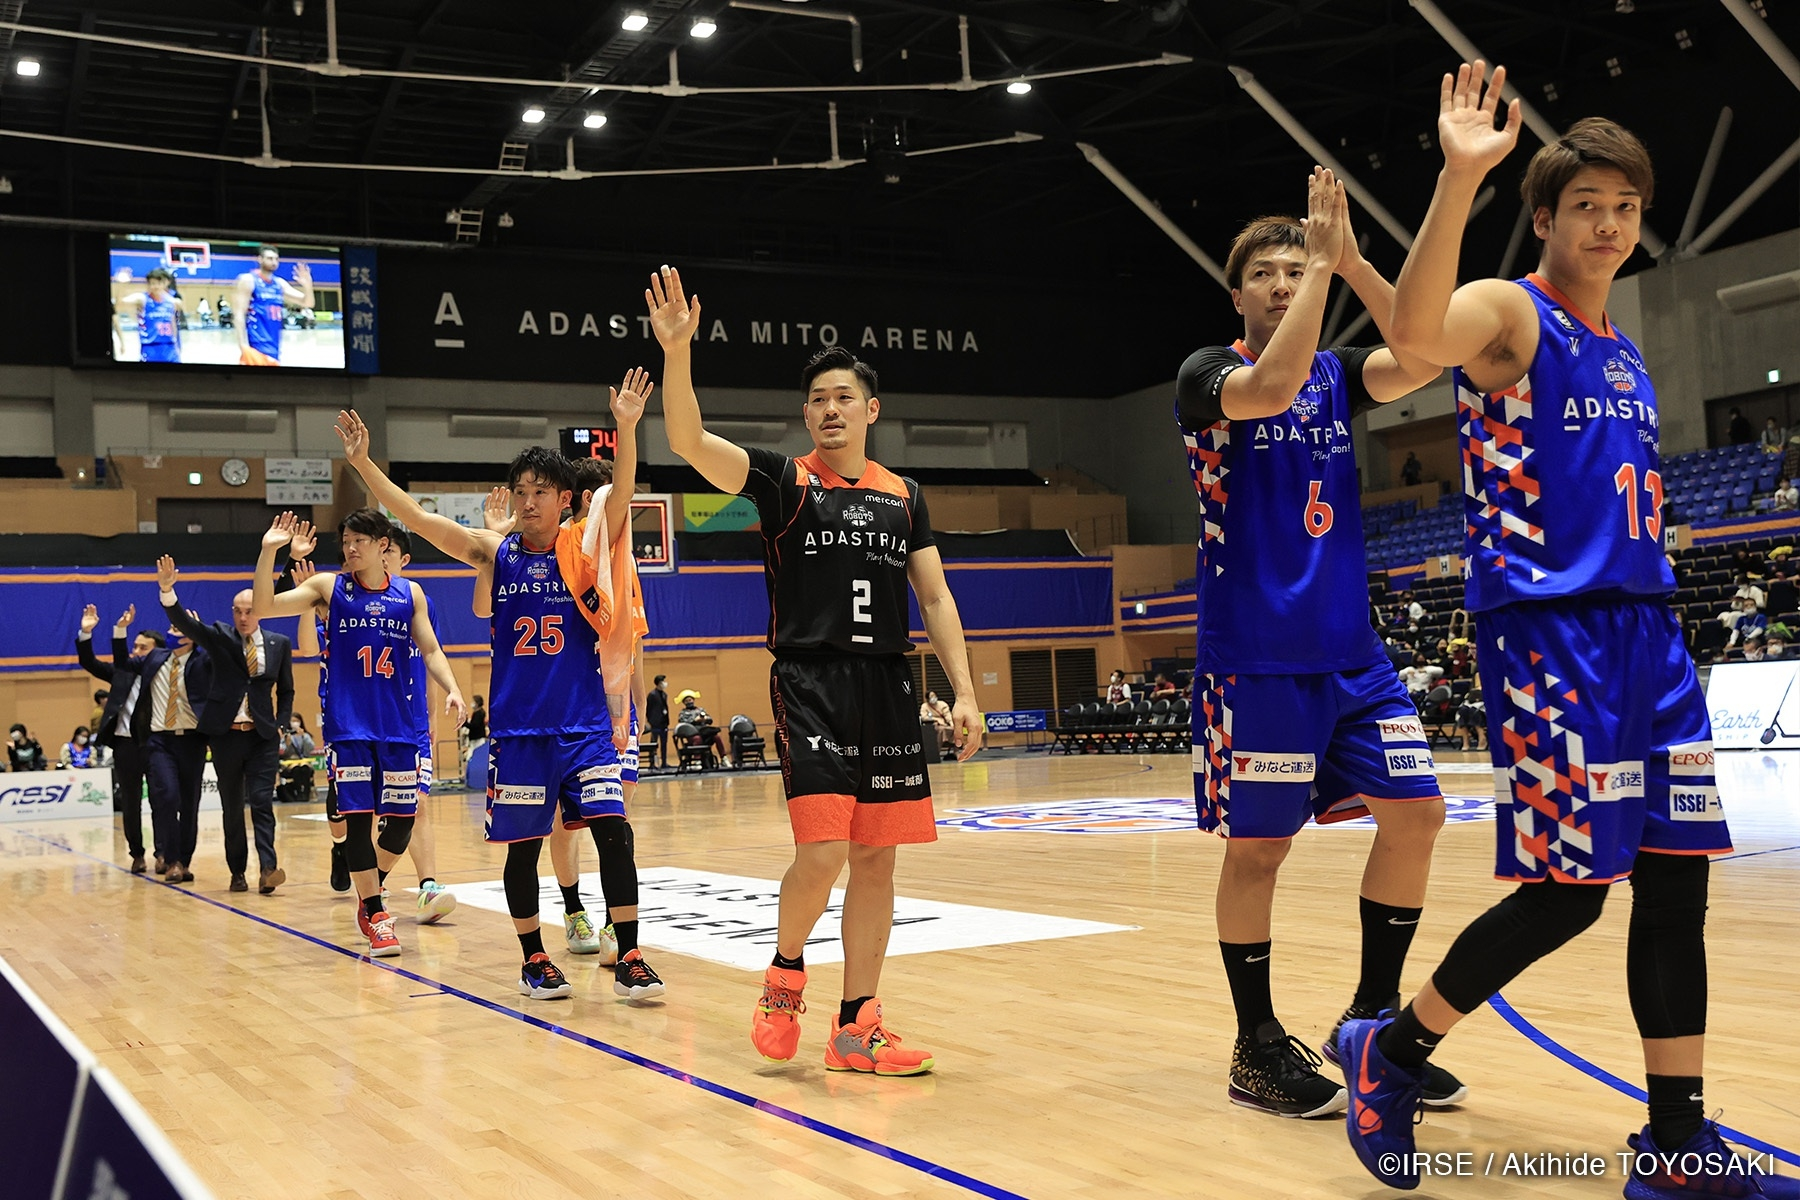 【AFTER GAME】 2020-21第6節 越谷戦(11/7~8)~死闘の末連勝ストップ。それでも下を向く必要なし~